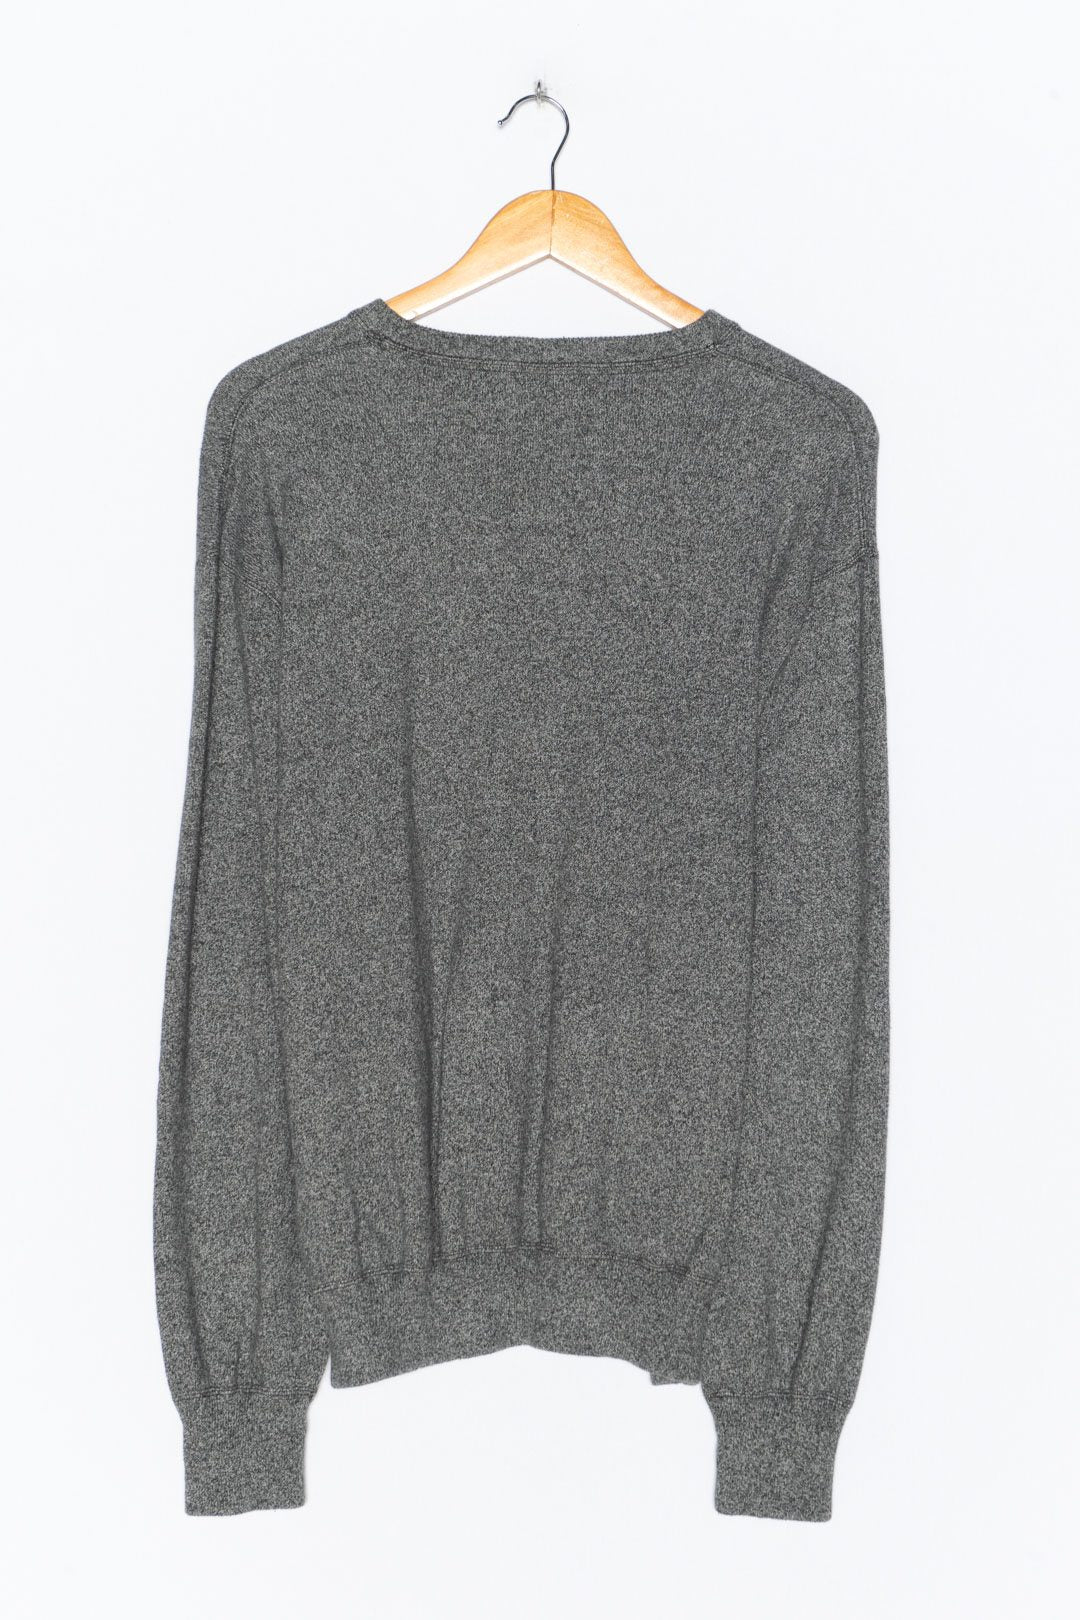 Ralph Lauren Grey Jumper XL - VinoKilo.com